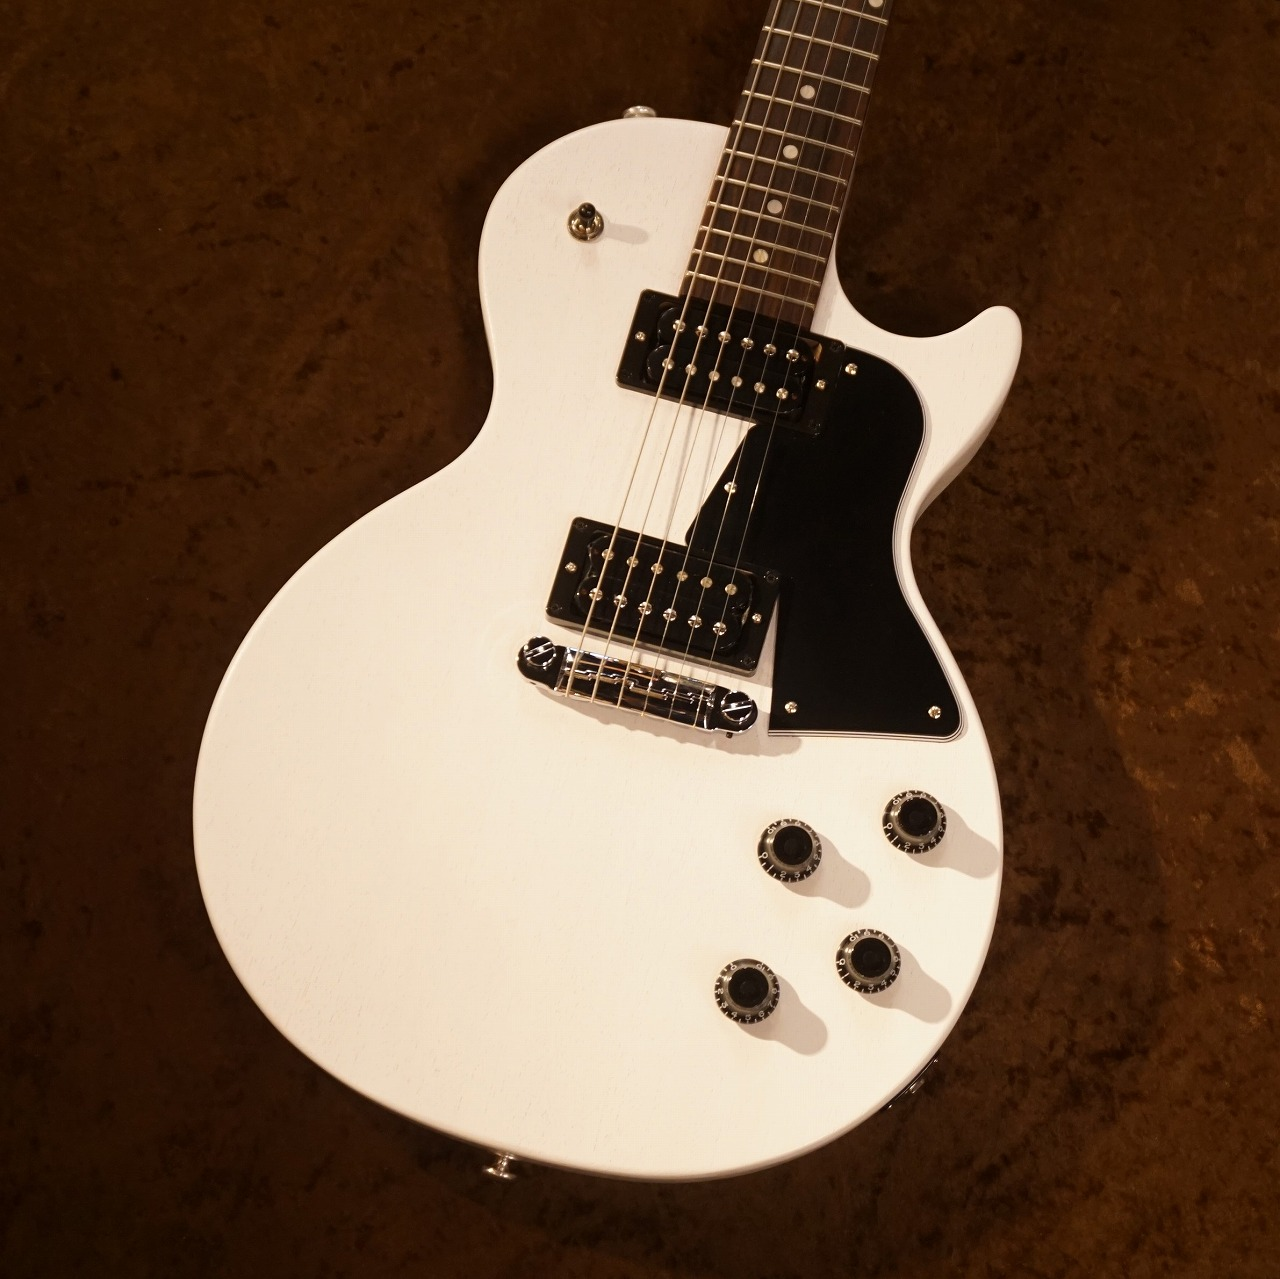 Gibson 【2020年モデル】 Les Paul Special Tribute Humbucker #206500229 [Natural White Satin] [3.12kg][送料無料]【G-CLUB TOKYO】